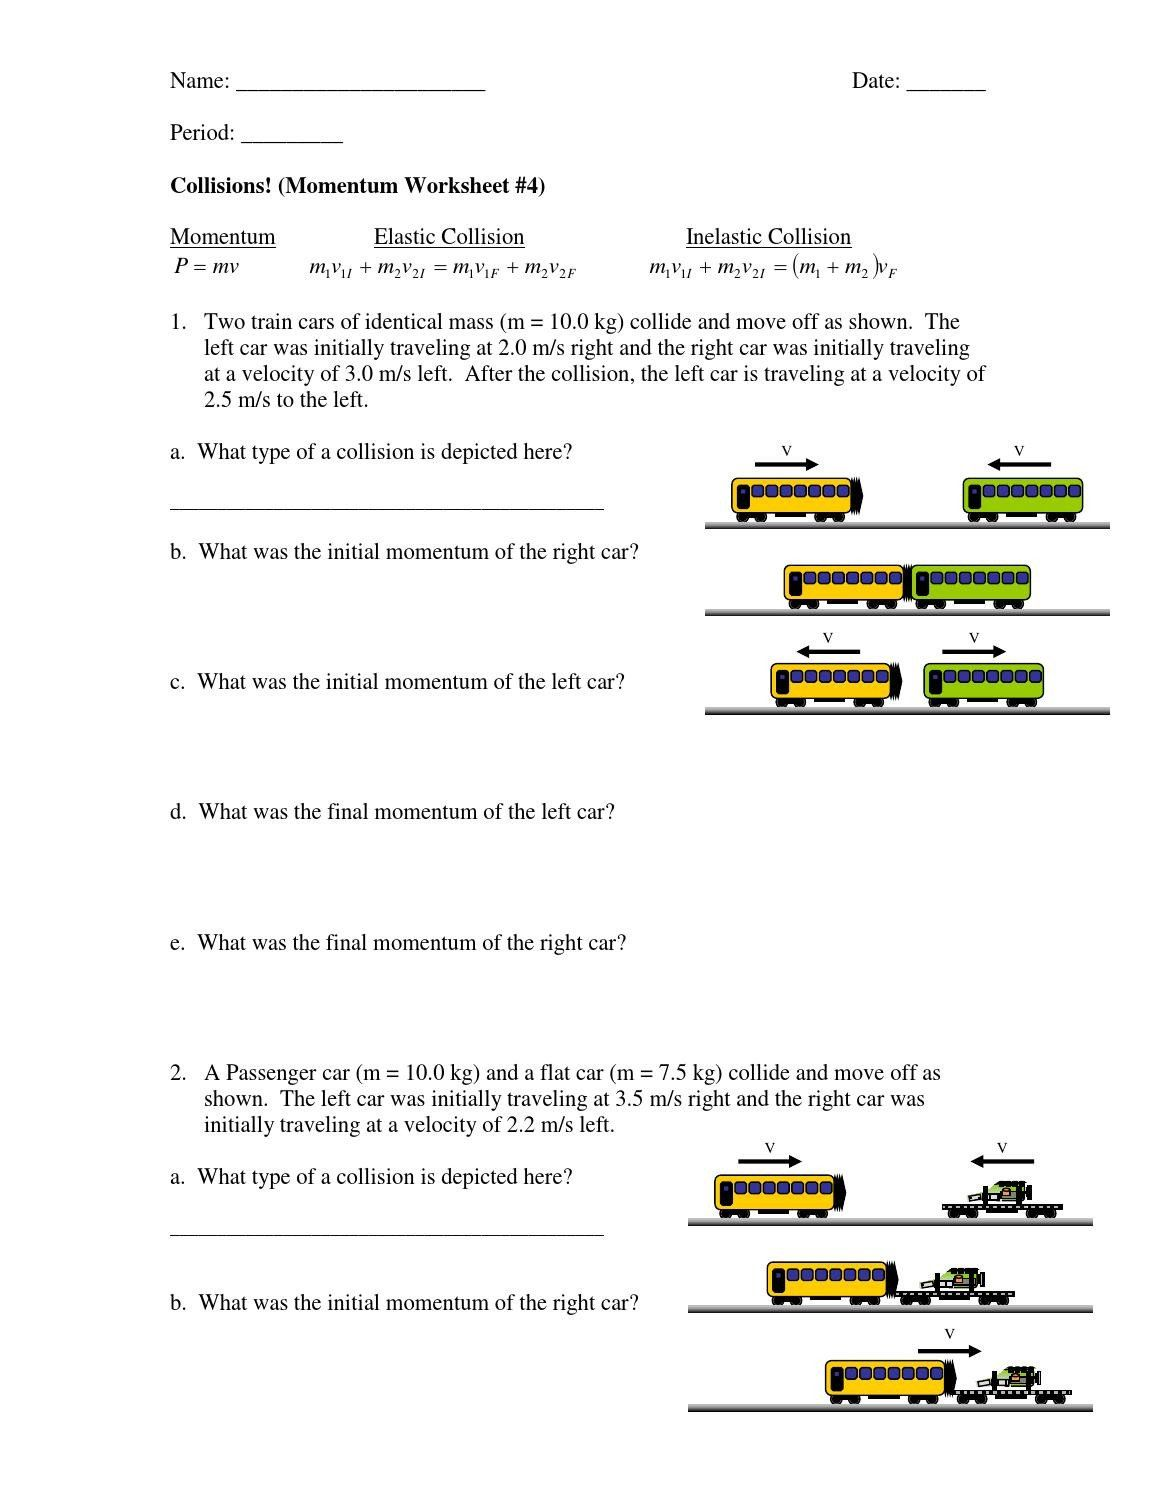 Momentum Worksheet Answers